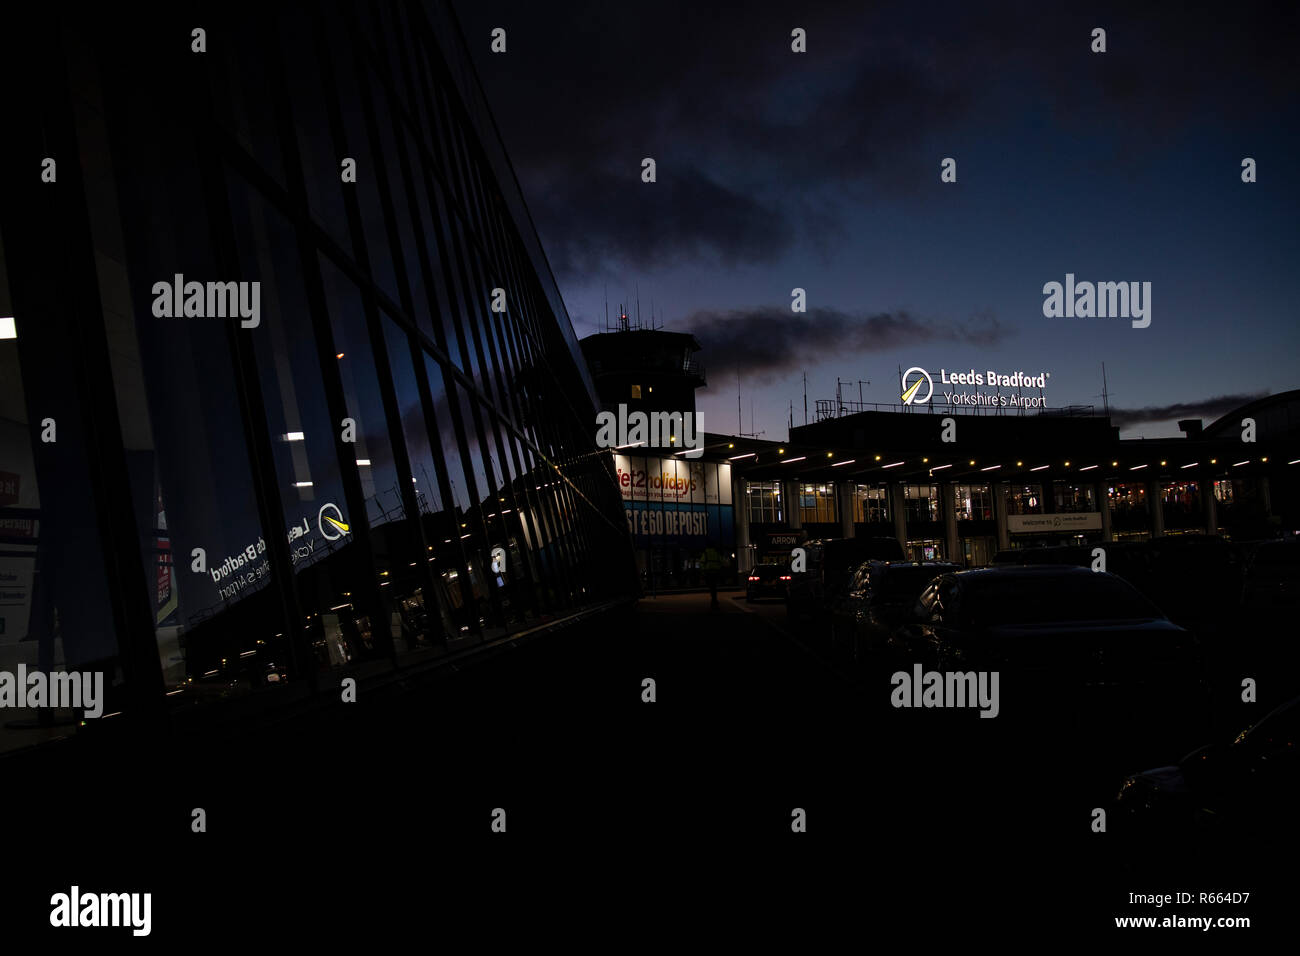 The welcome to Leeds & Bradford Airport sign at LBA. Night time & Daytime - Stock Image